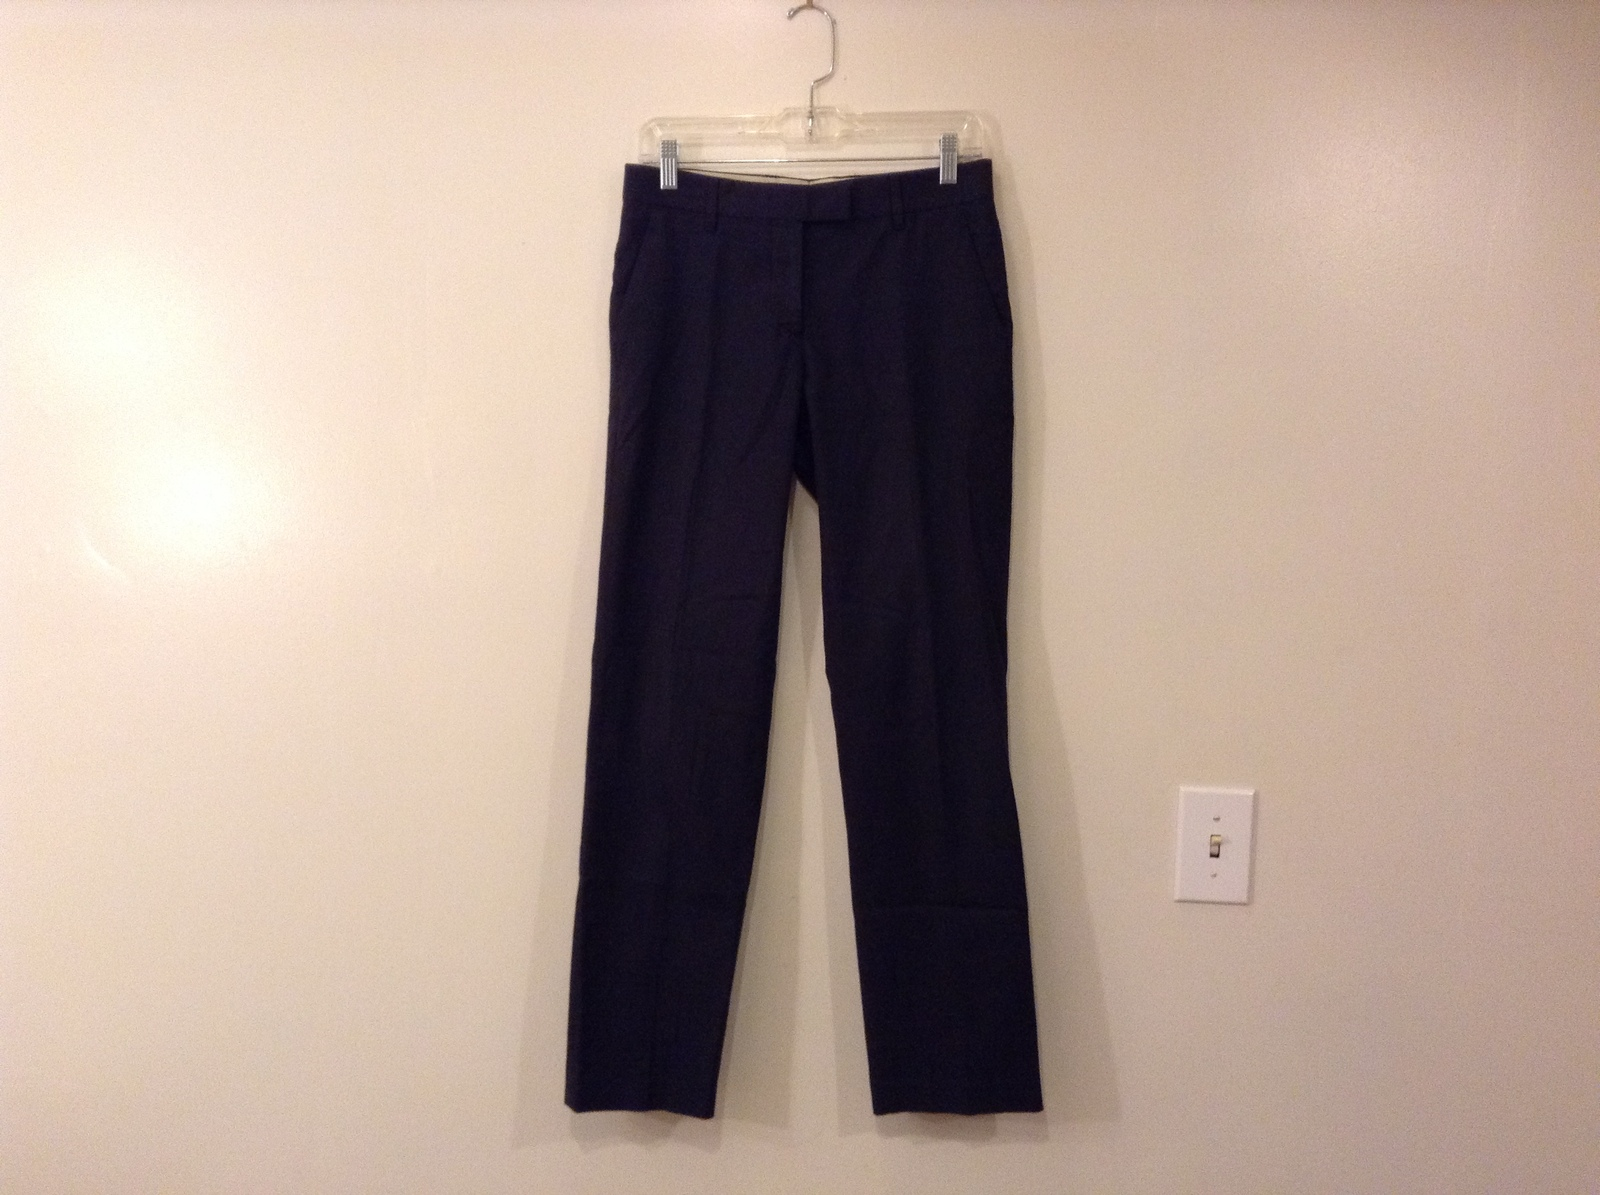 Helmut Lang Cotton Navy Blue-Black Dress Pants made in Italy, size EUR 40